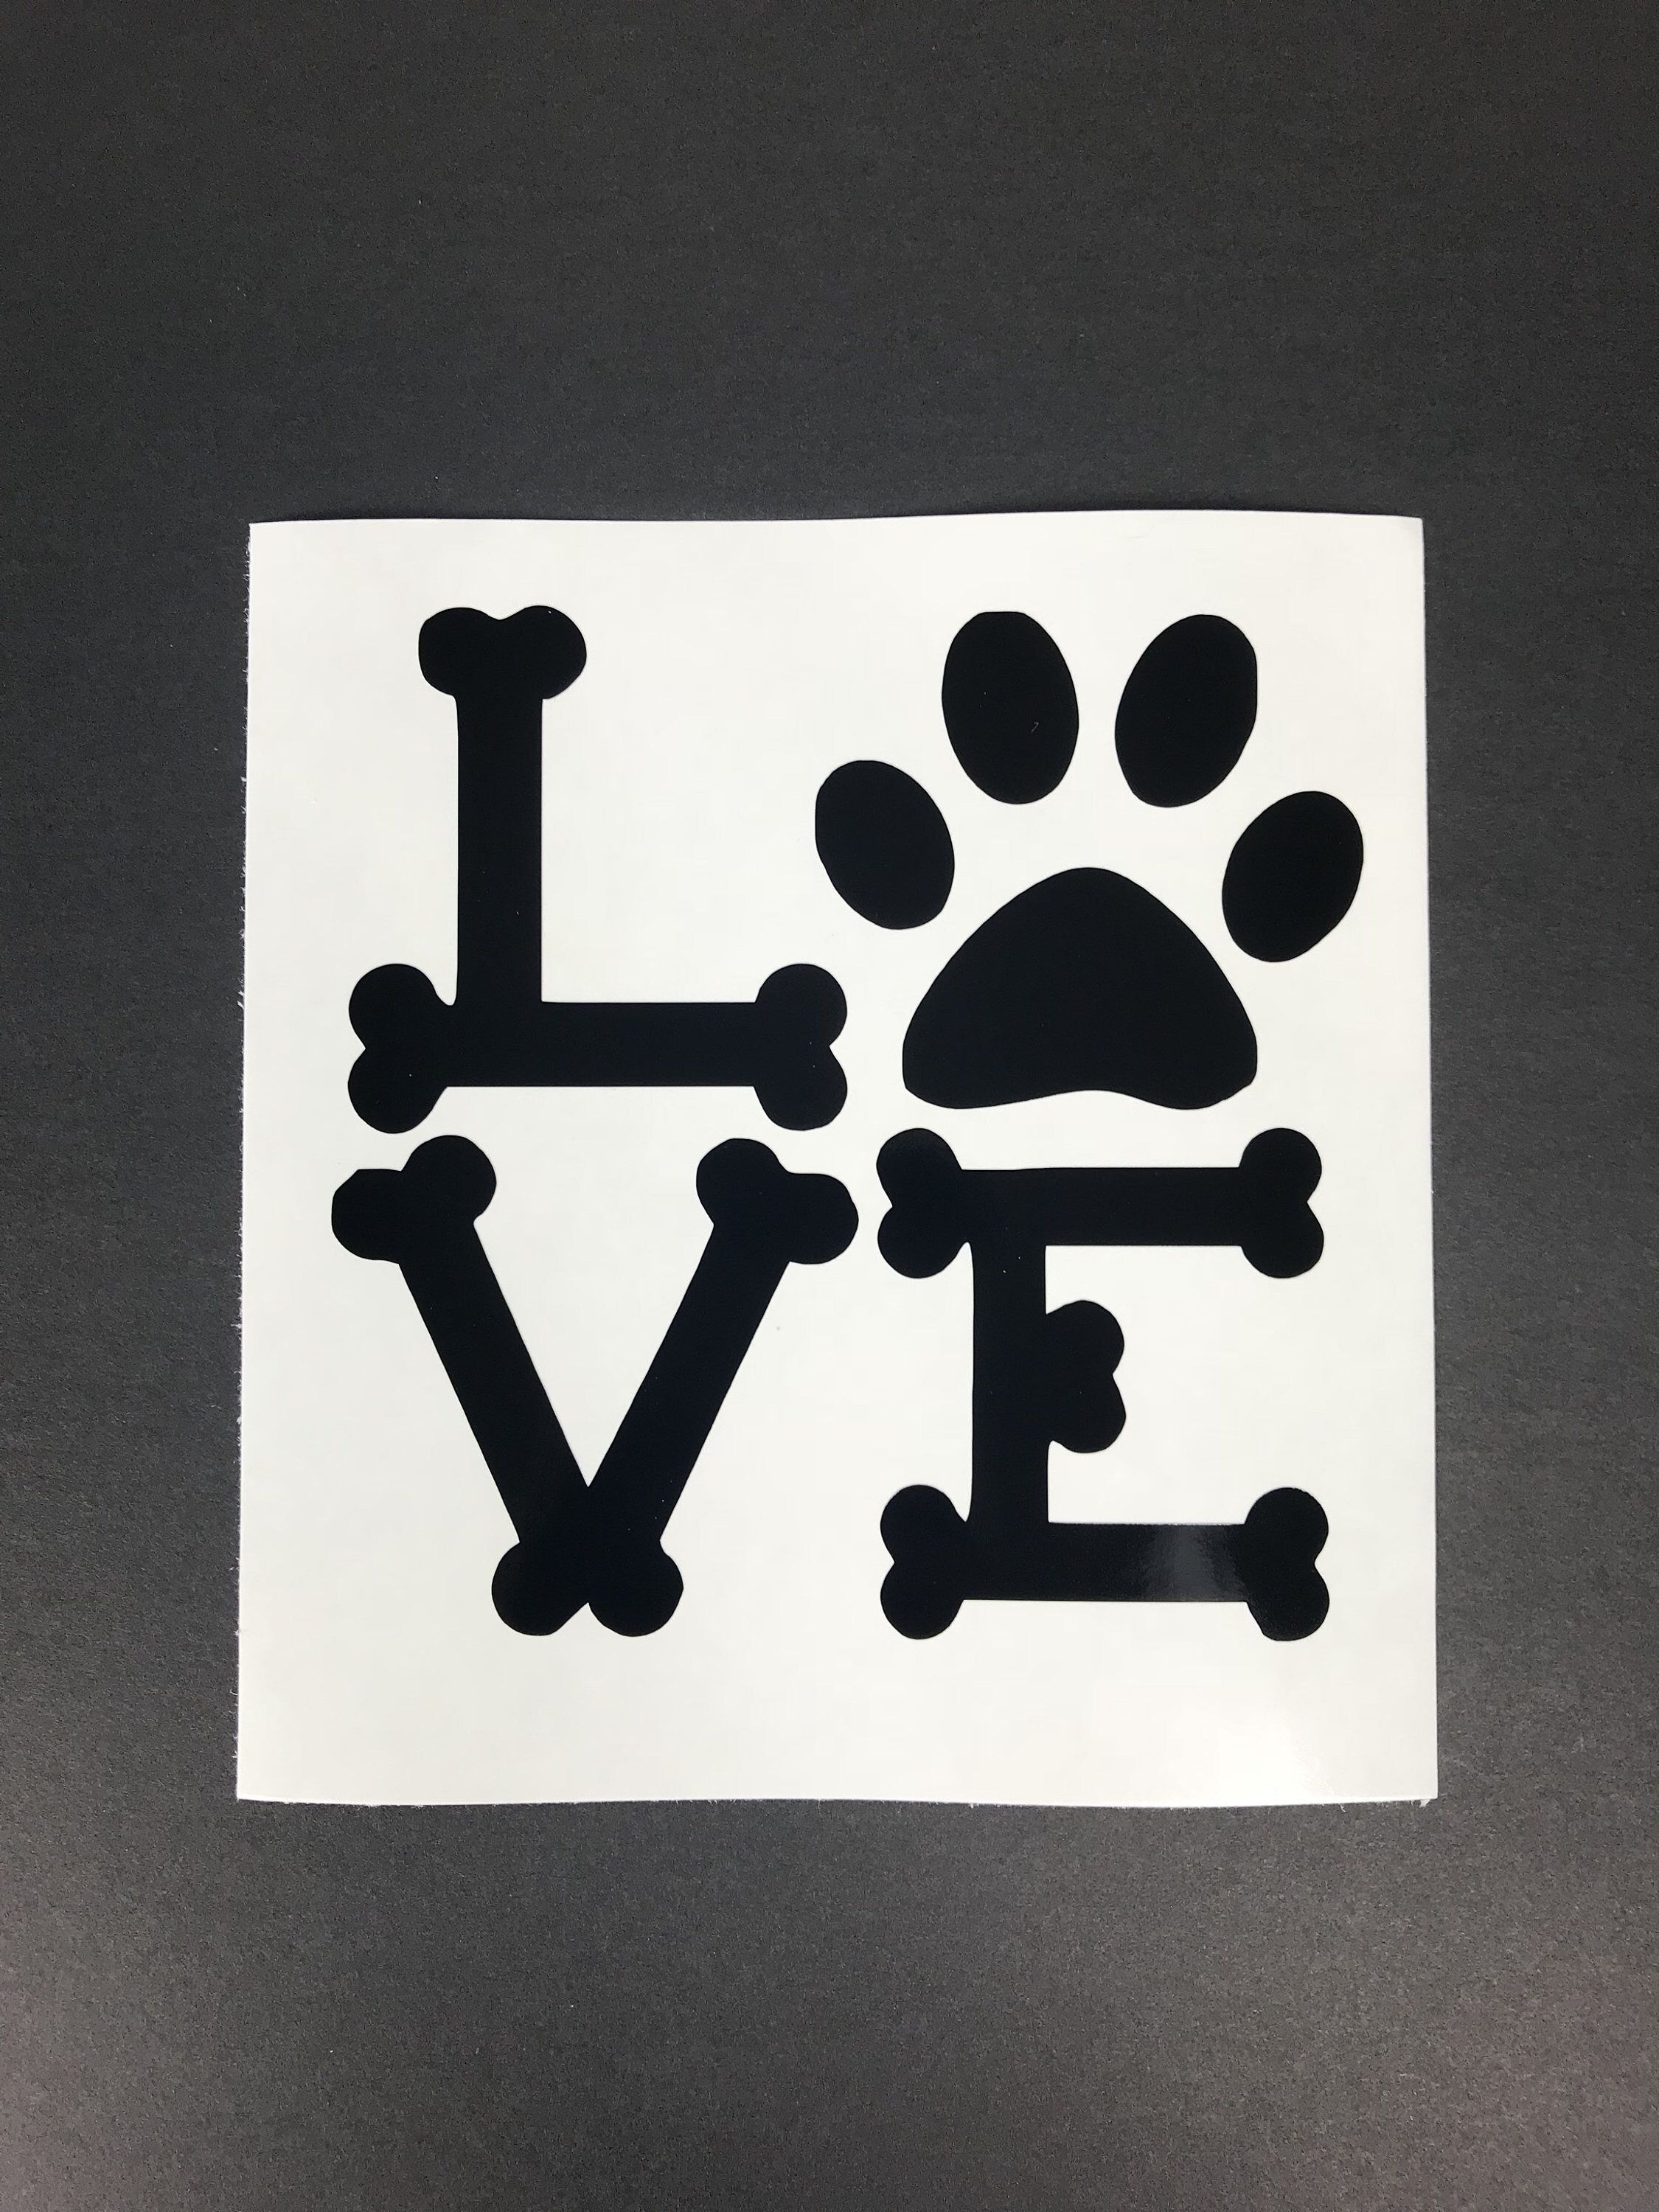 Excited to share the latest addition to my etsy shop pet love car decal love car decal car decals vinyl car decal dog car decal window sticker